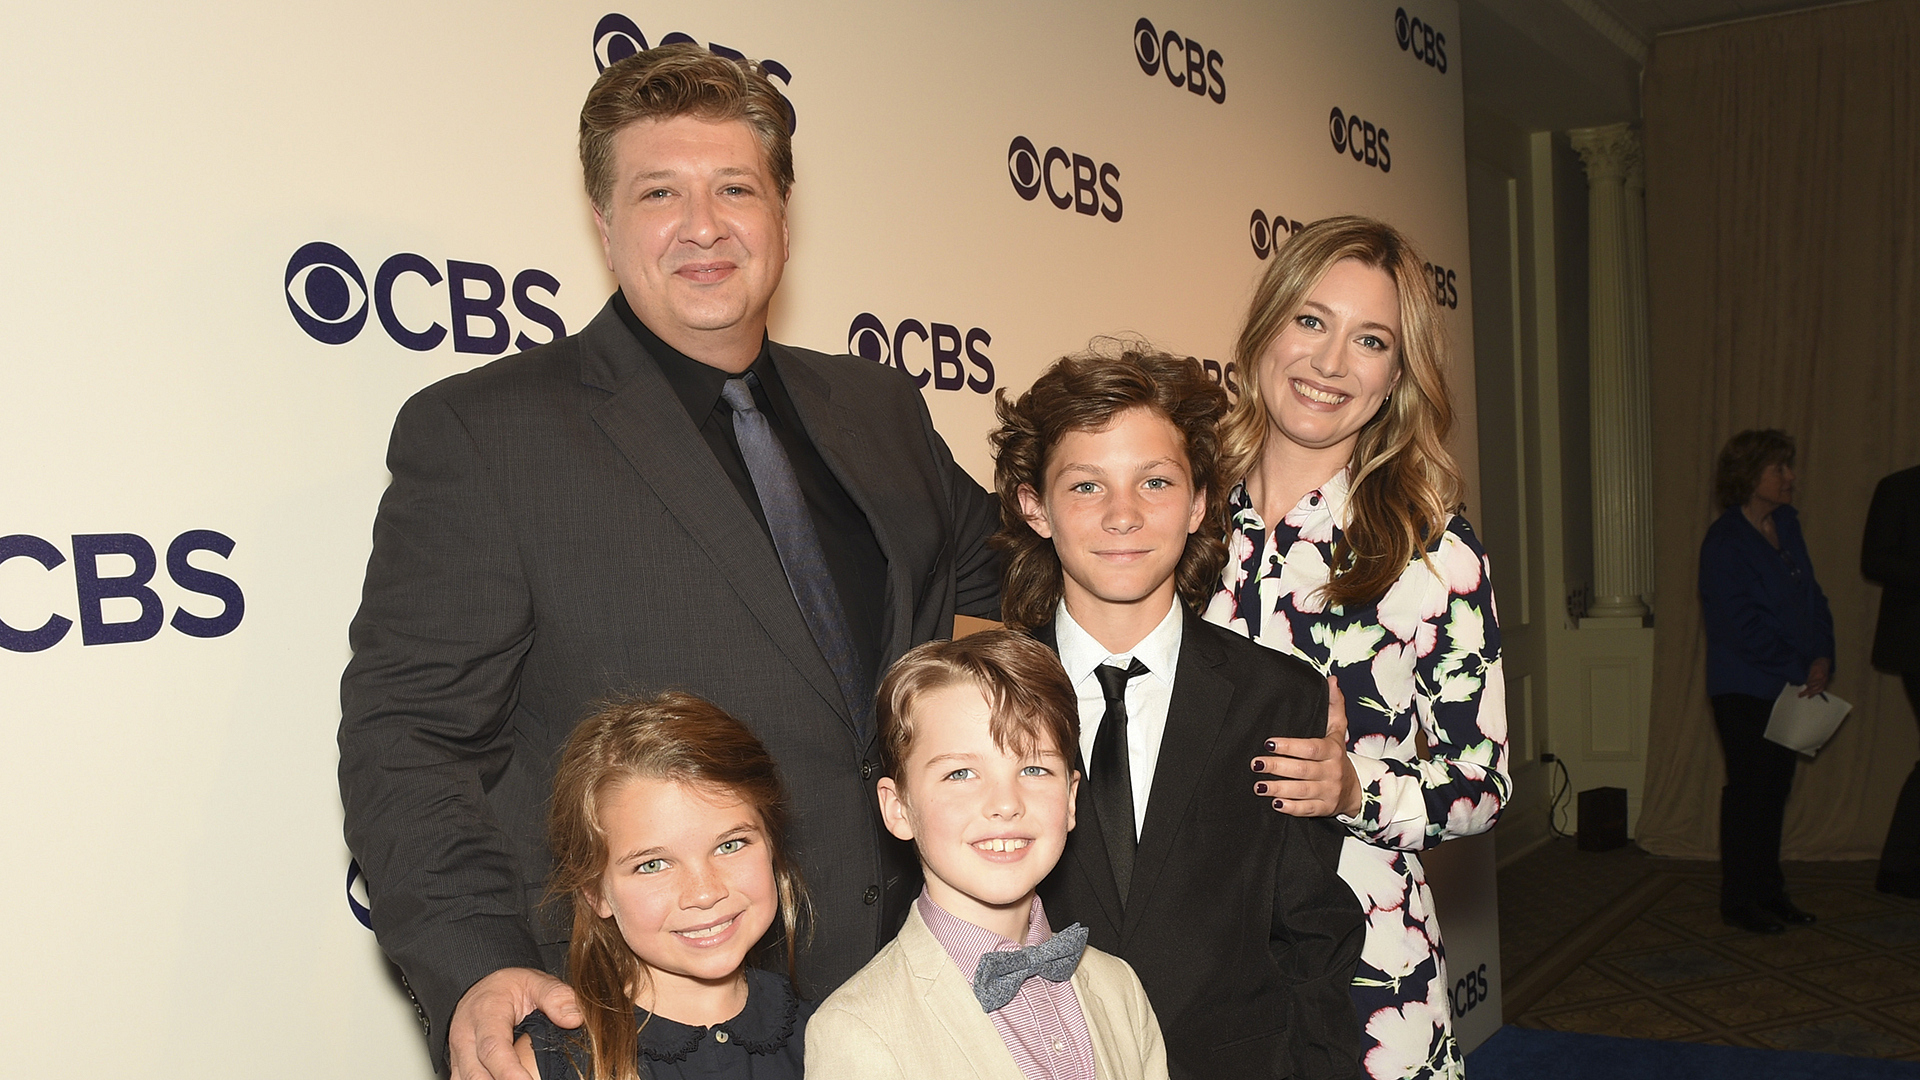 The cast of Young Sheldon takes a family portrait.